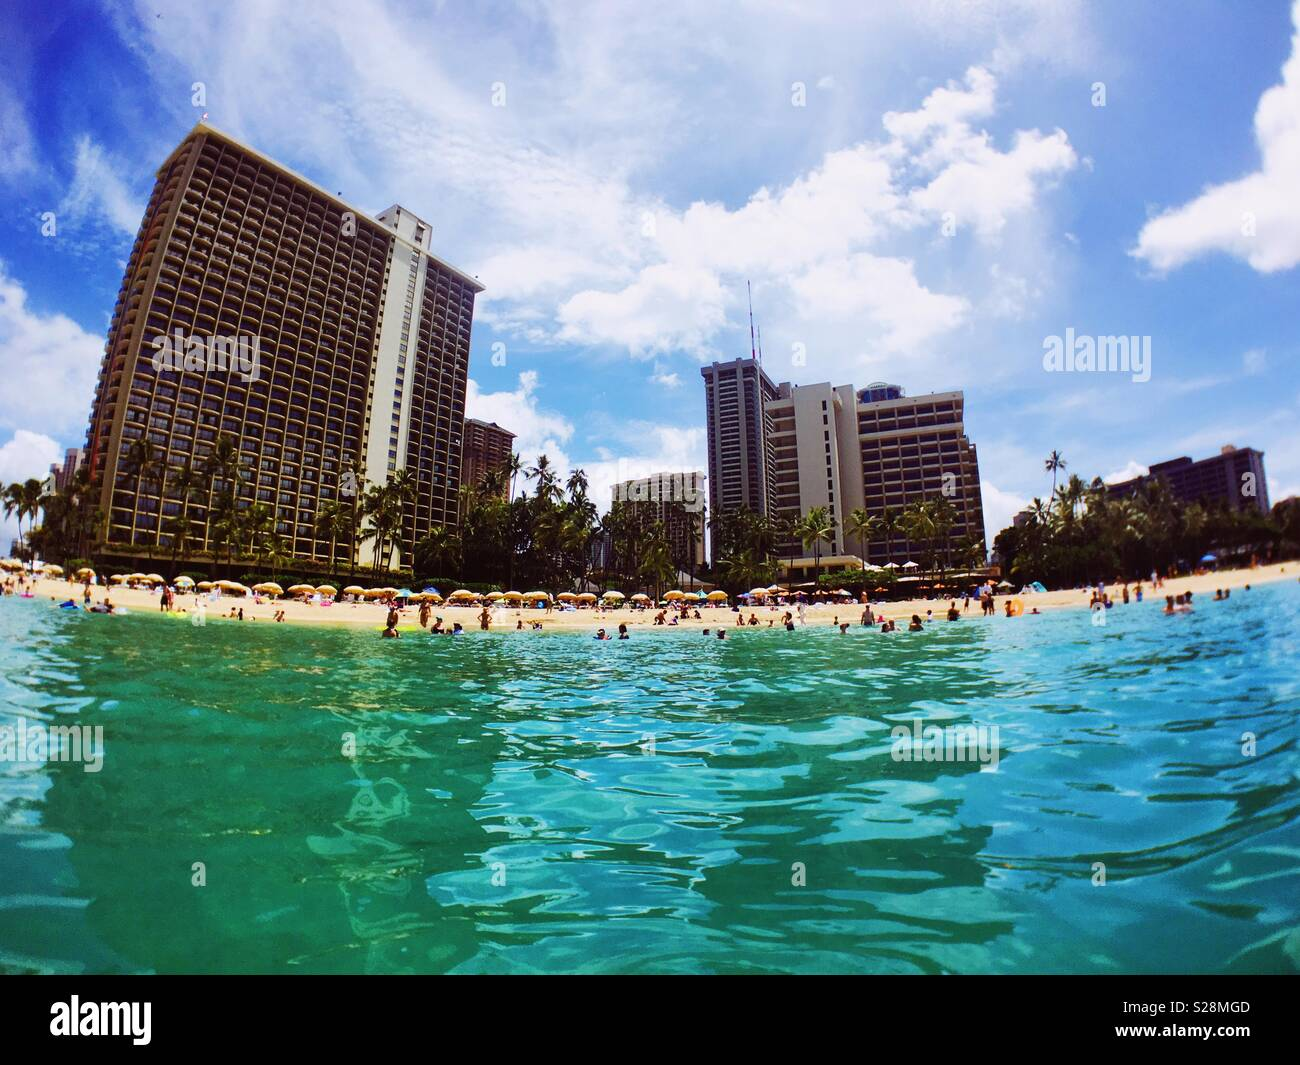 Hilton Hawaiian Village and beach as seen from the ocean. July 2018. - Stock Image